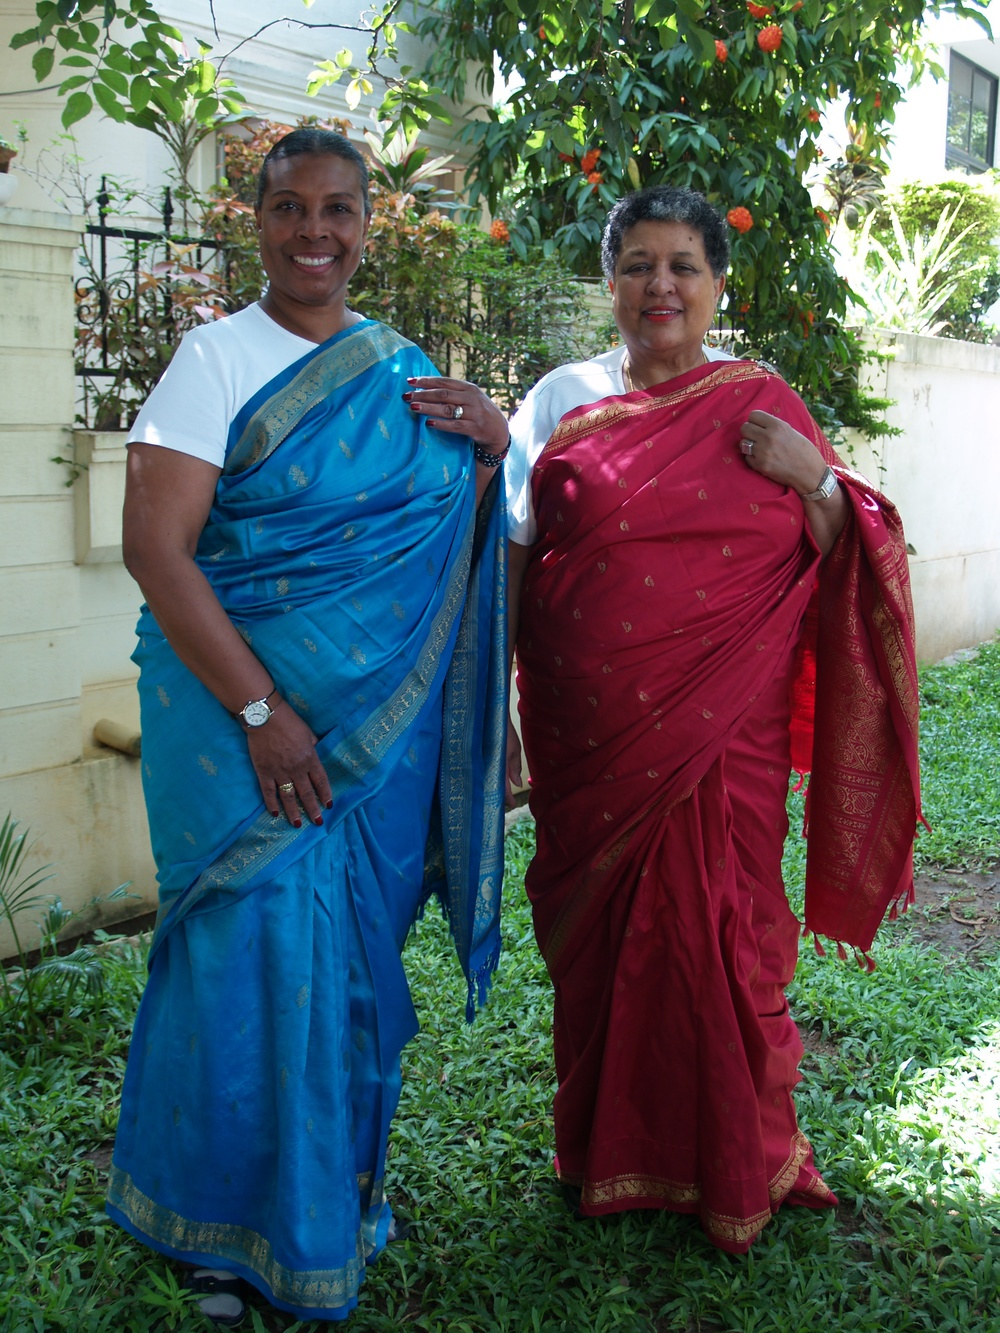 Here we are in Bangalore, India dressed in the finest saris ever! We loved India and would return again any time.